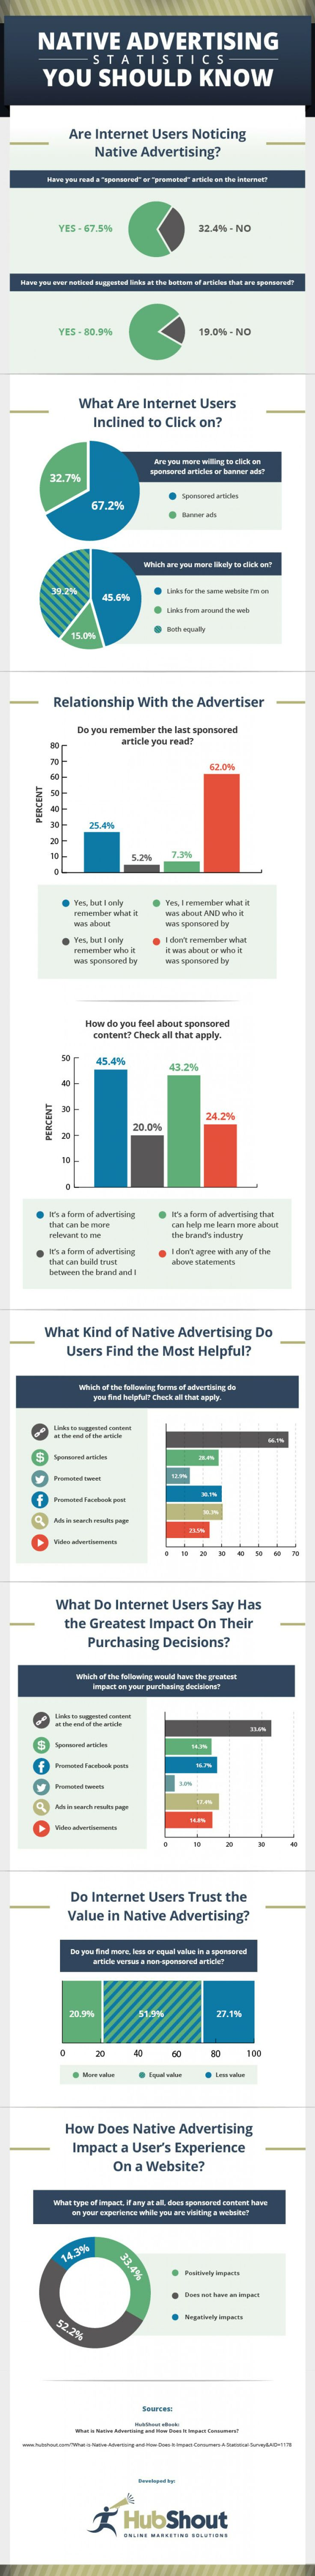 Native Advertising Statistics You Should Know